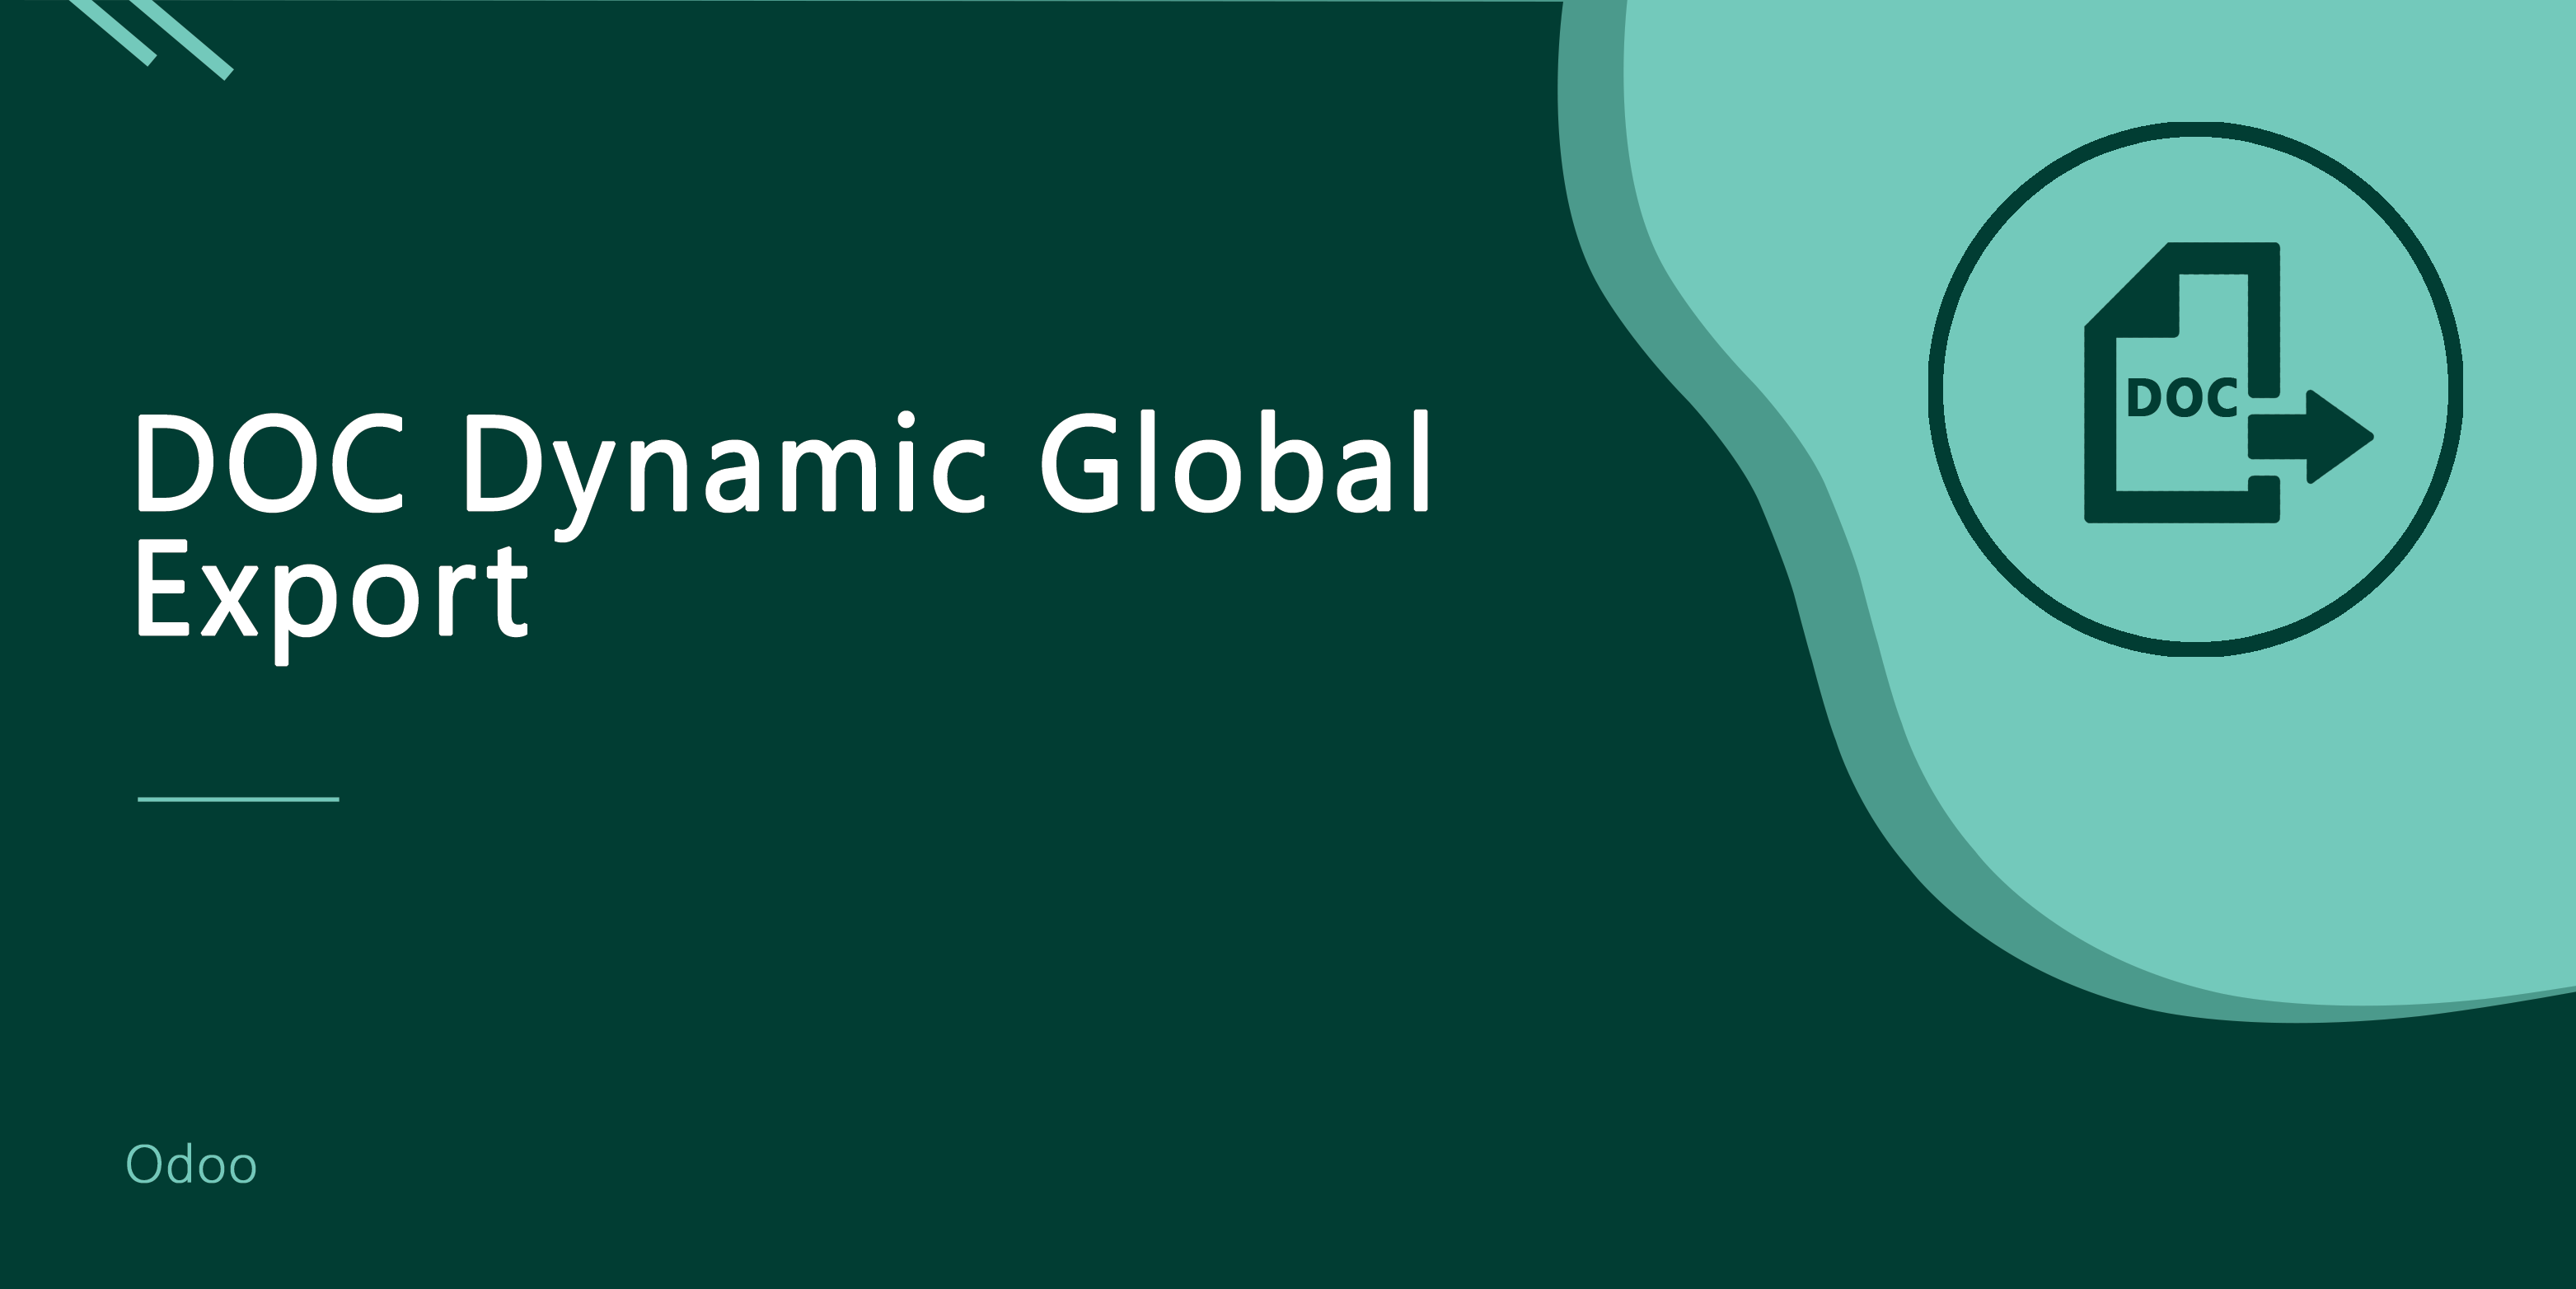 DOC Dynamic Global Export